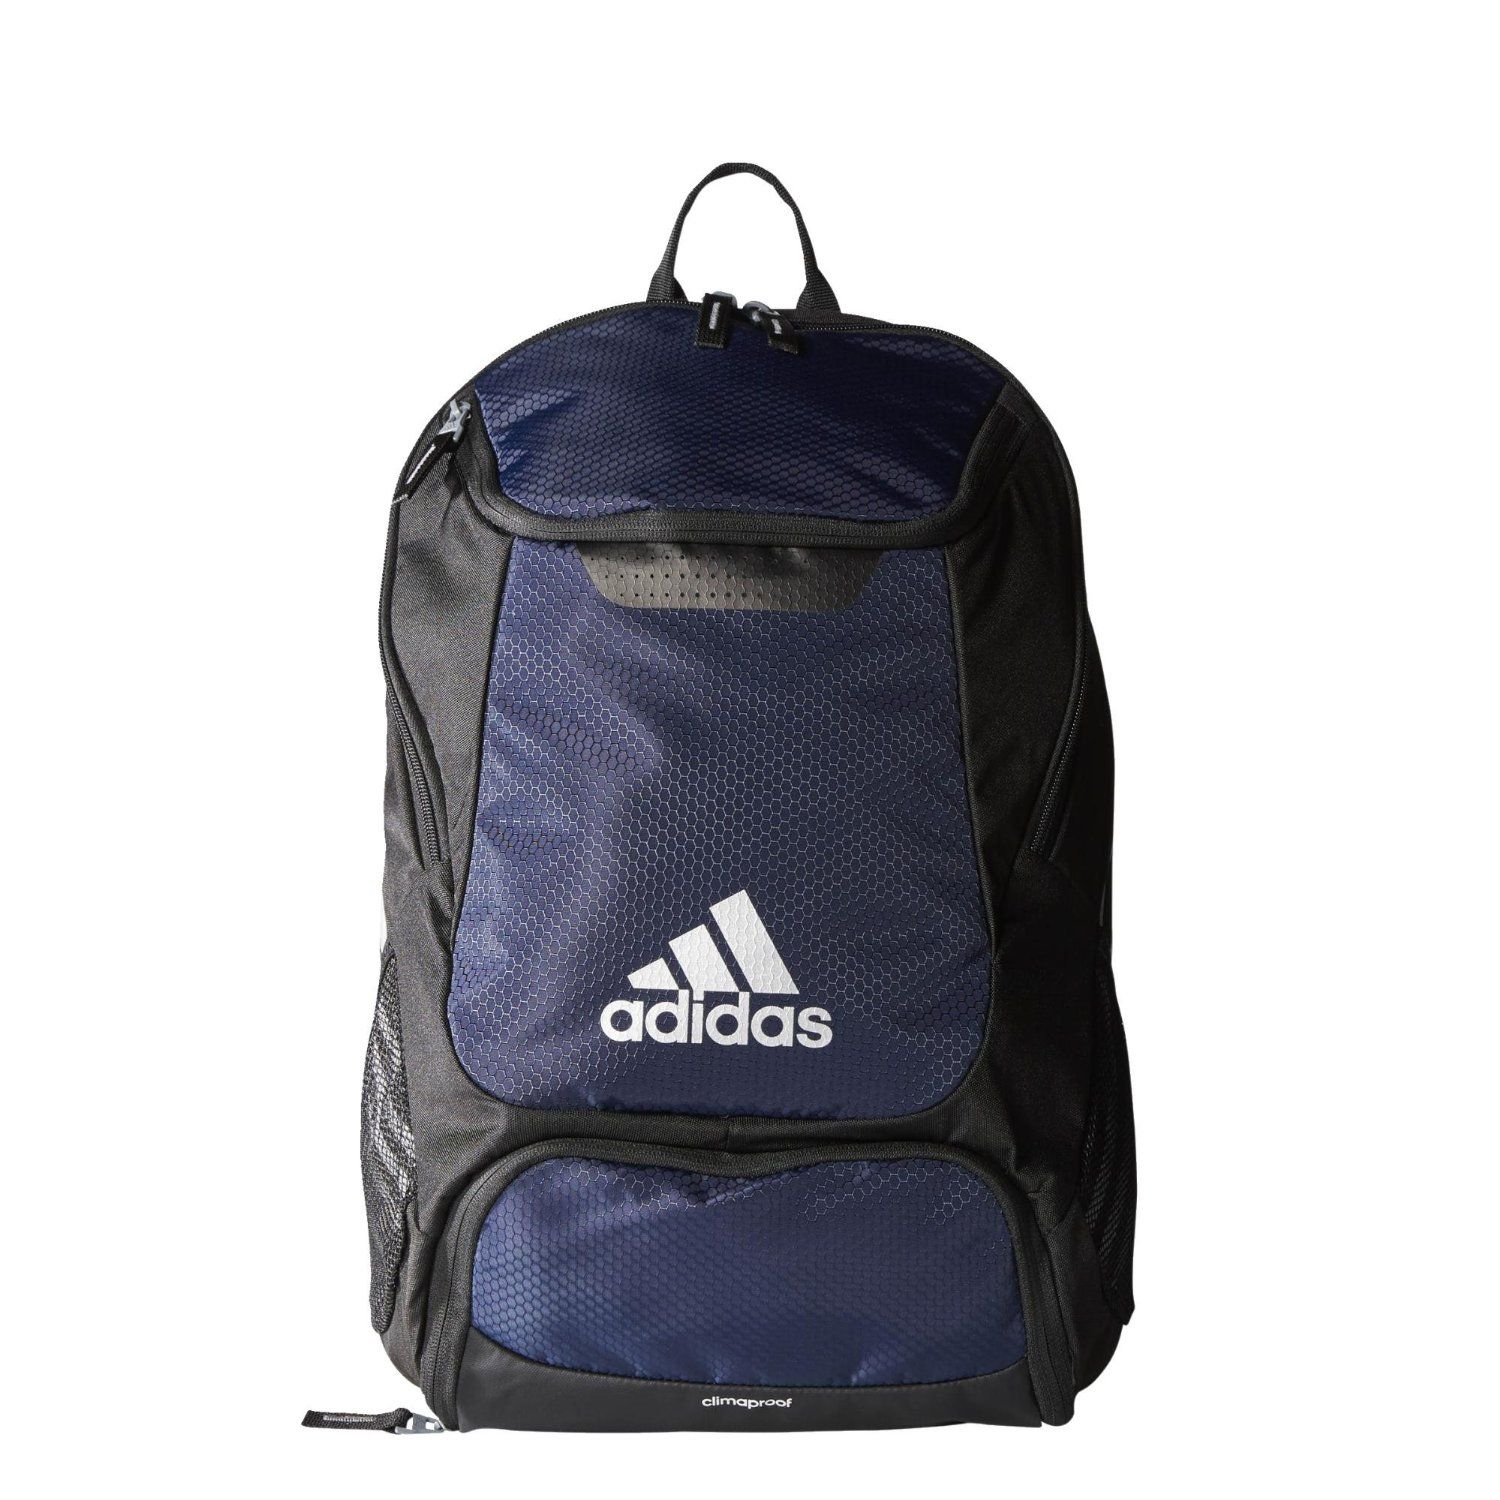 07ad12eecdc4 adidas Stadium Team Backpack Sale 50%. Now only  32.95